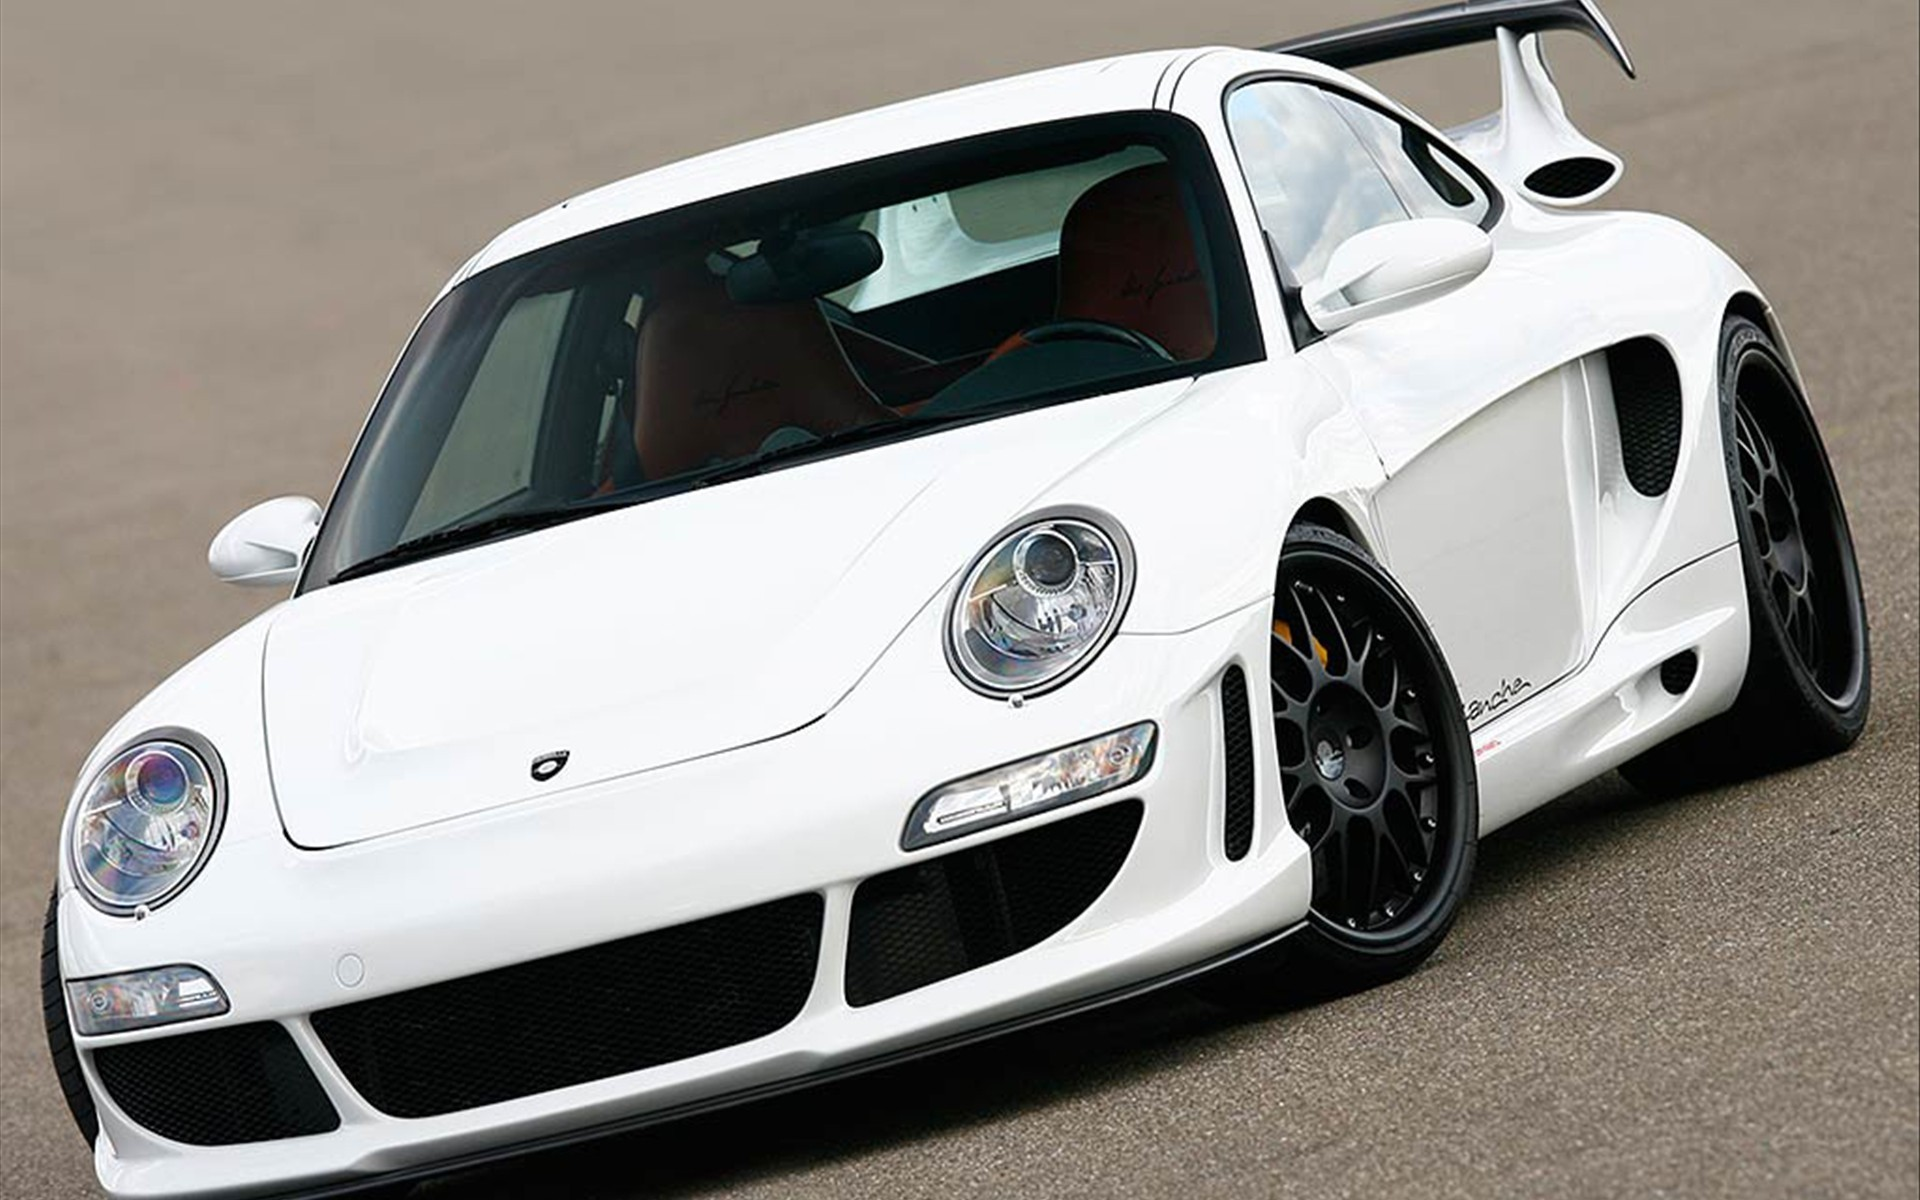 Porsche cars Gemballa avalanche HD Wallpaper